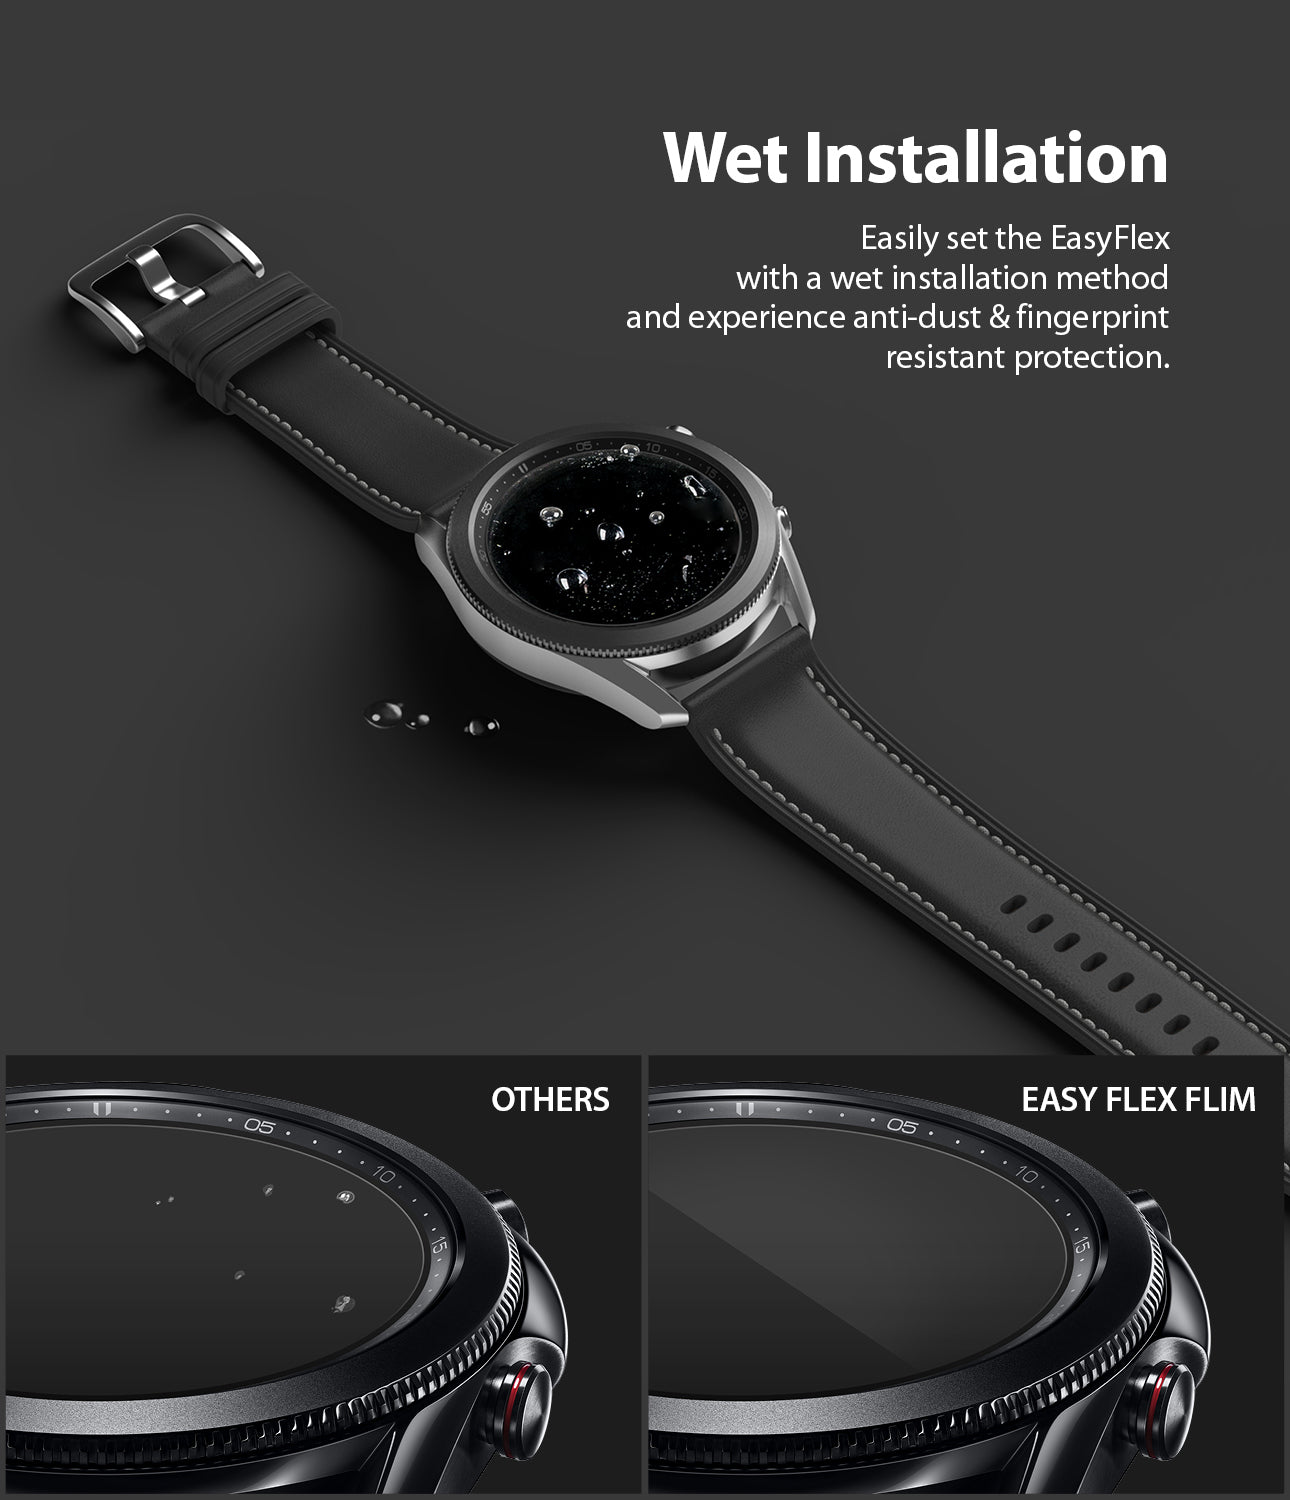 wet installation -easily set the easy flex with a wet installation method and experience anti-dust and fingerprint resistant protection